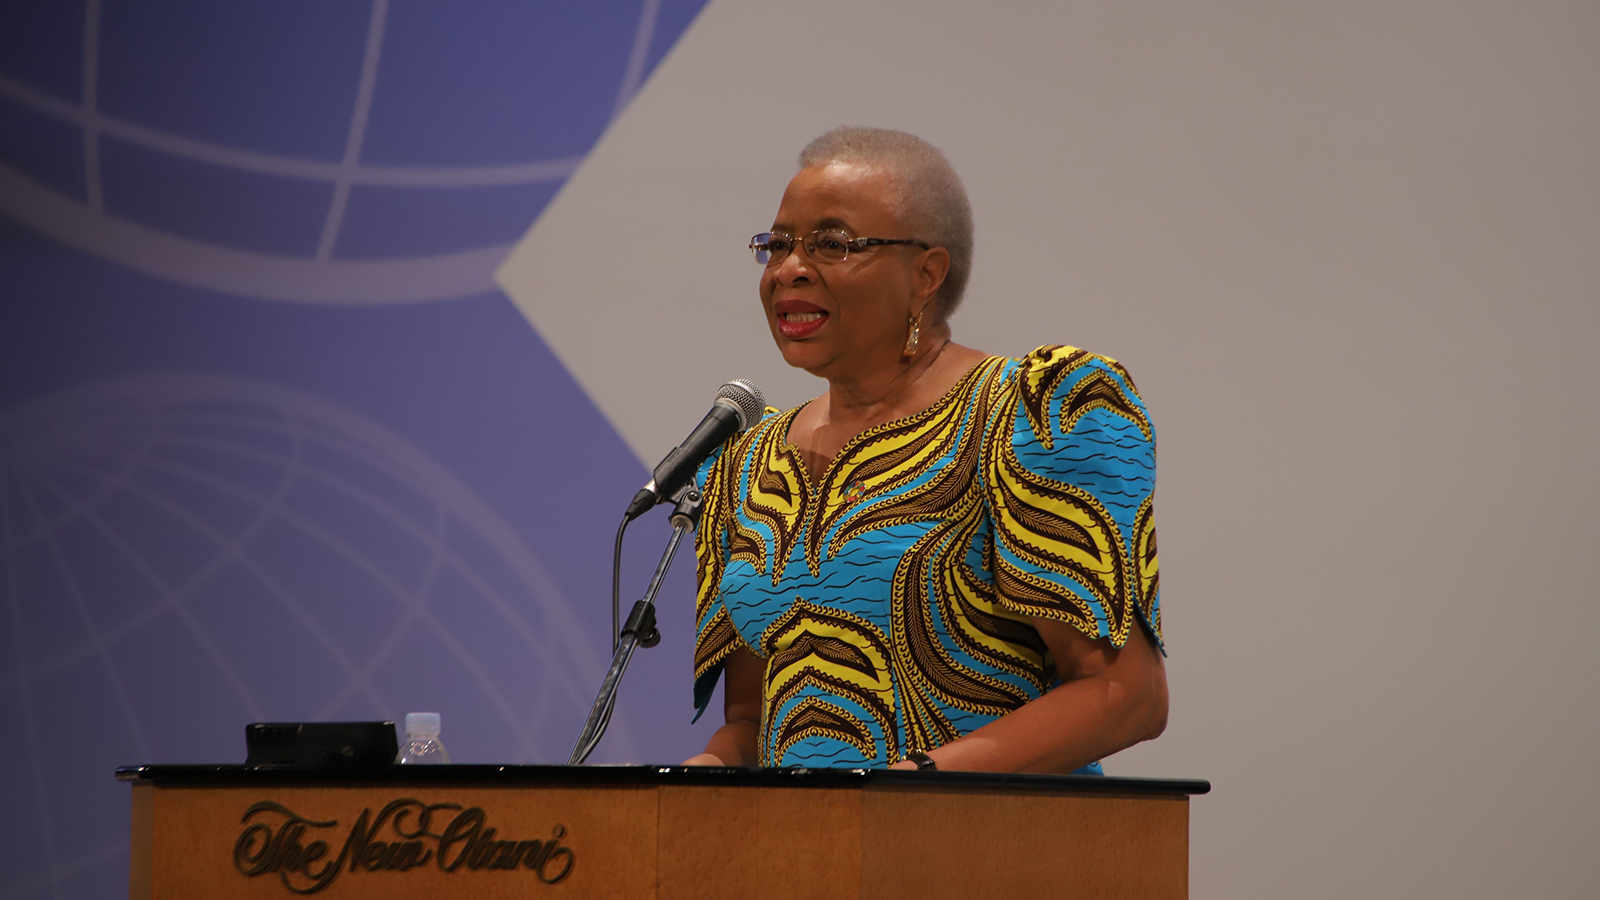 Graça Machel, an international advocate for women and children, spoke powerfully about caring for refugee children.